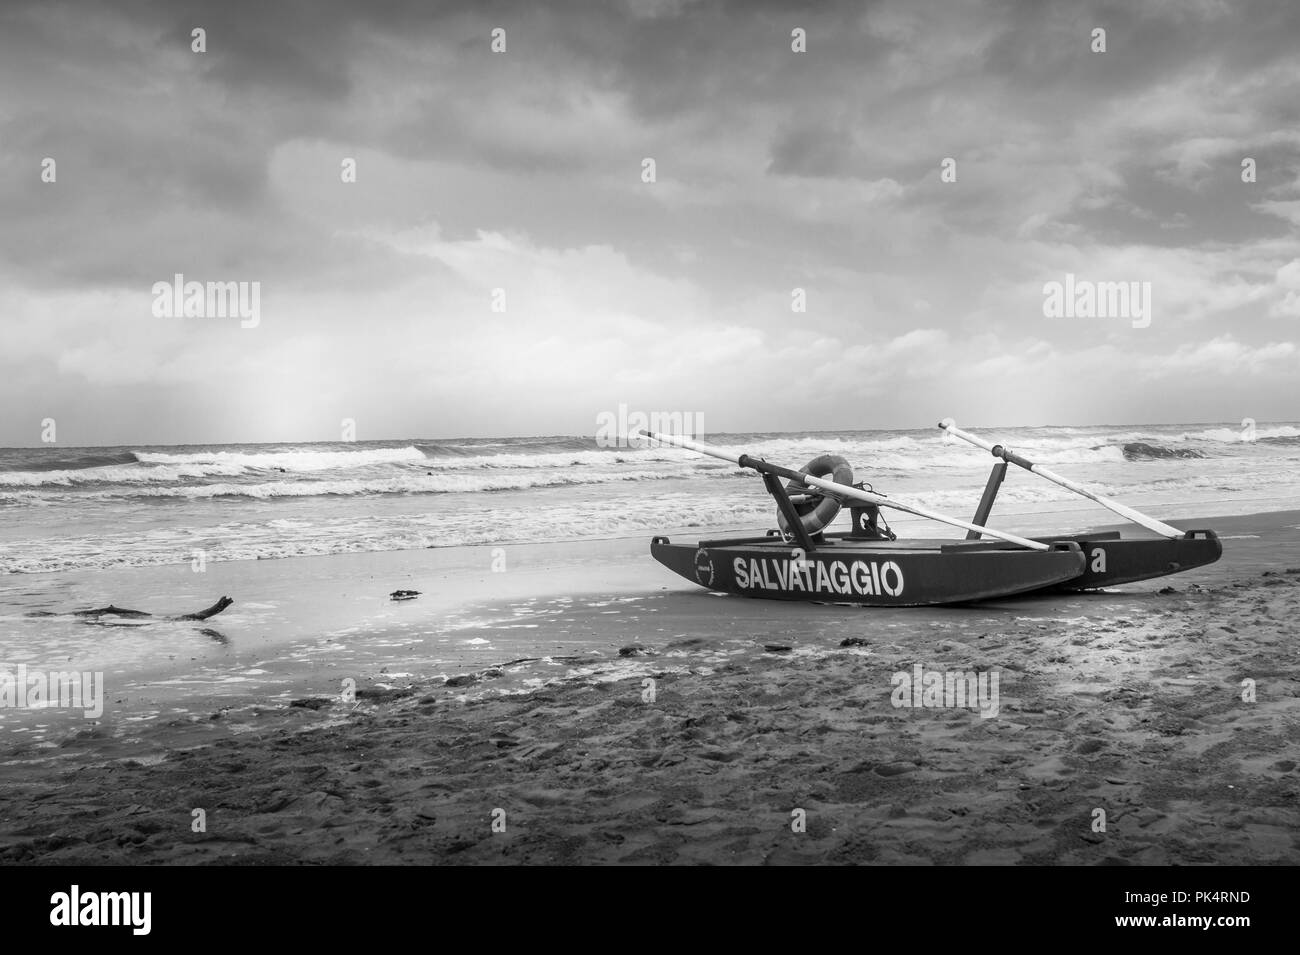 rescue boat in black and white on beach on a bad weather day Stock Photo